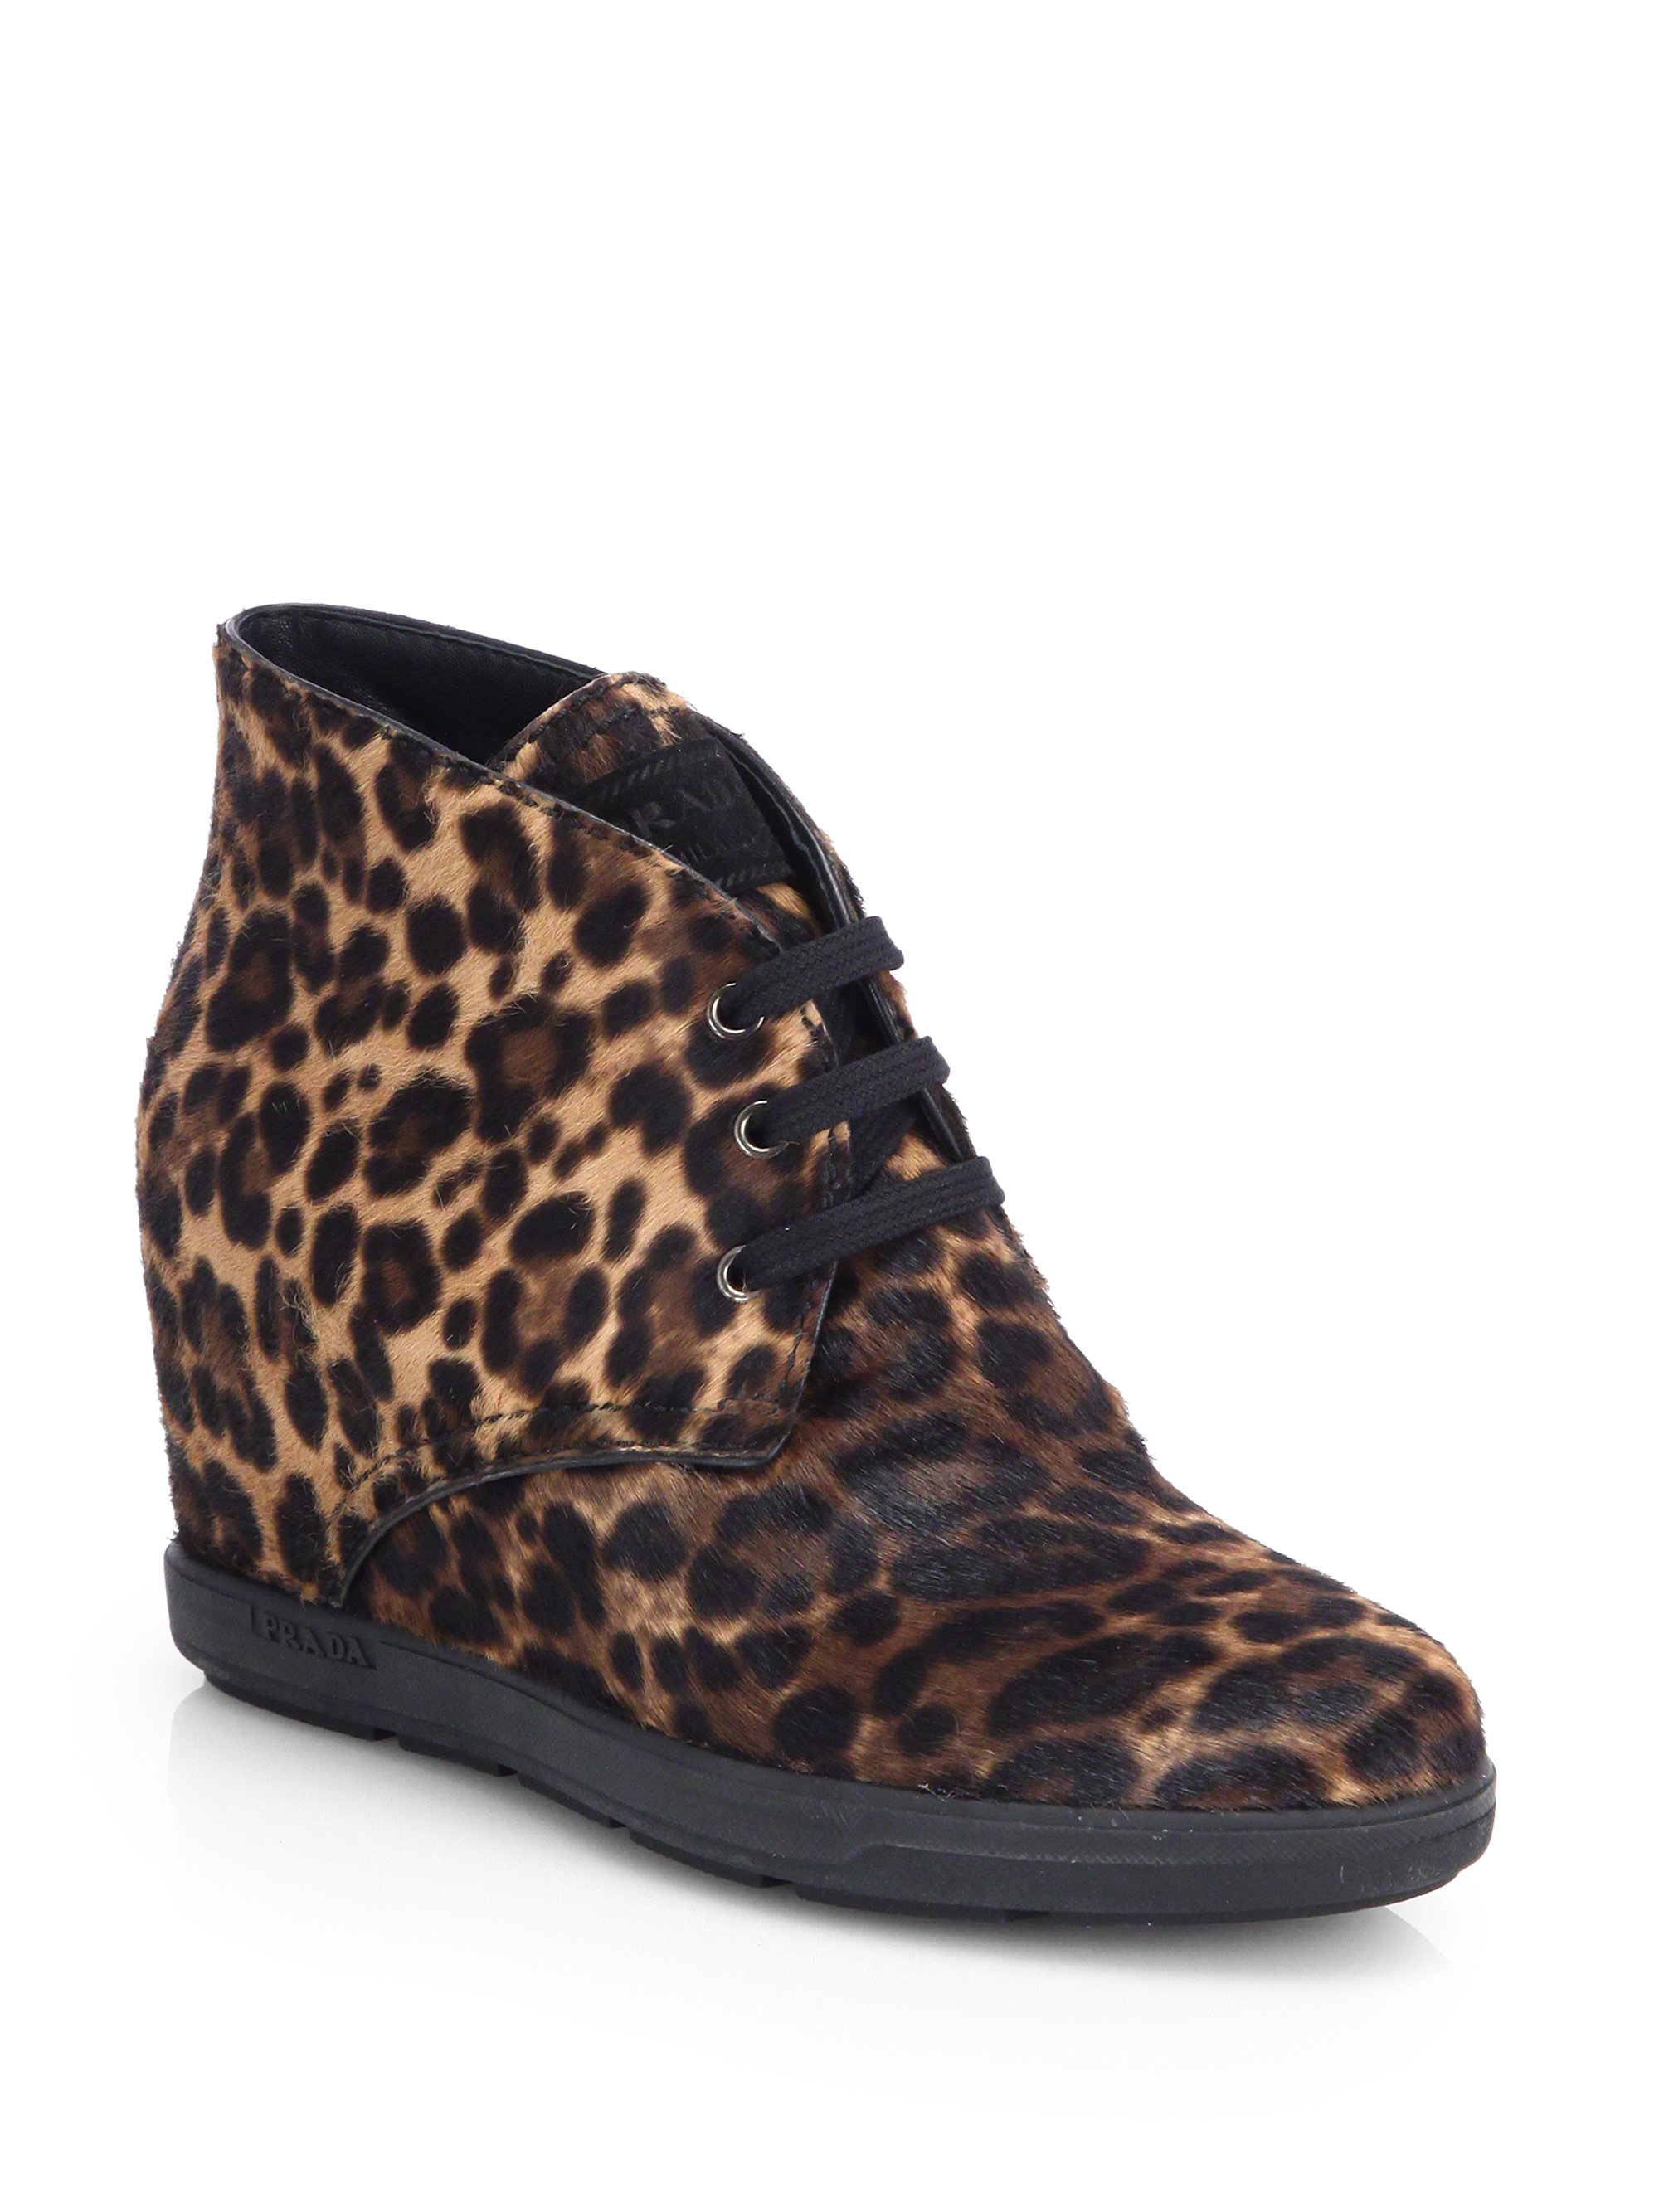 prada leopardprint calf hair wedge sneakers in animal leopard lyst. Black Bedroom Furniture Sets. Home Design Ideas